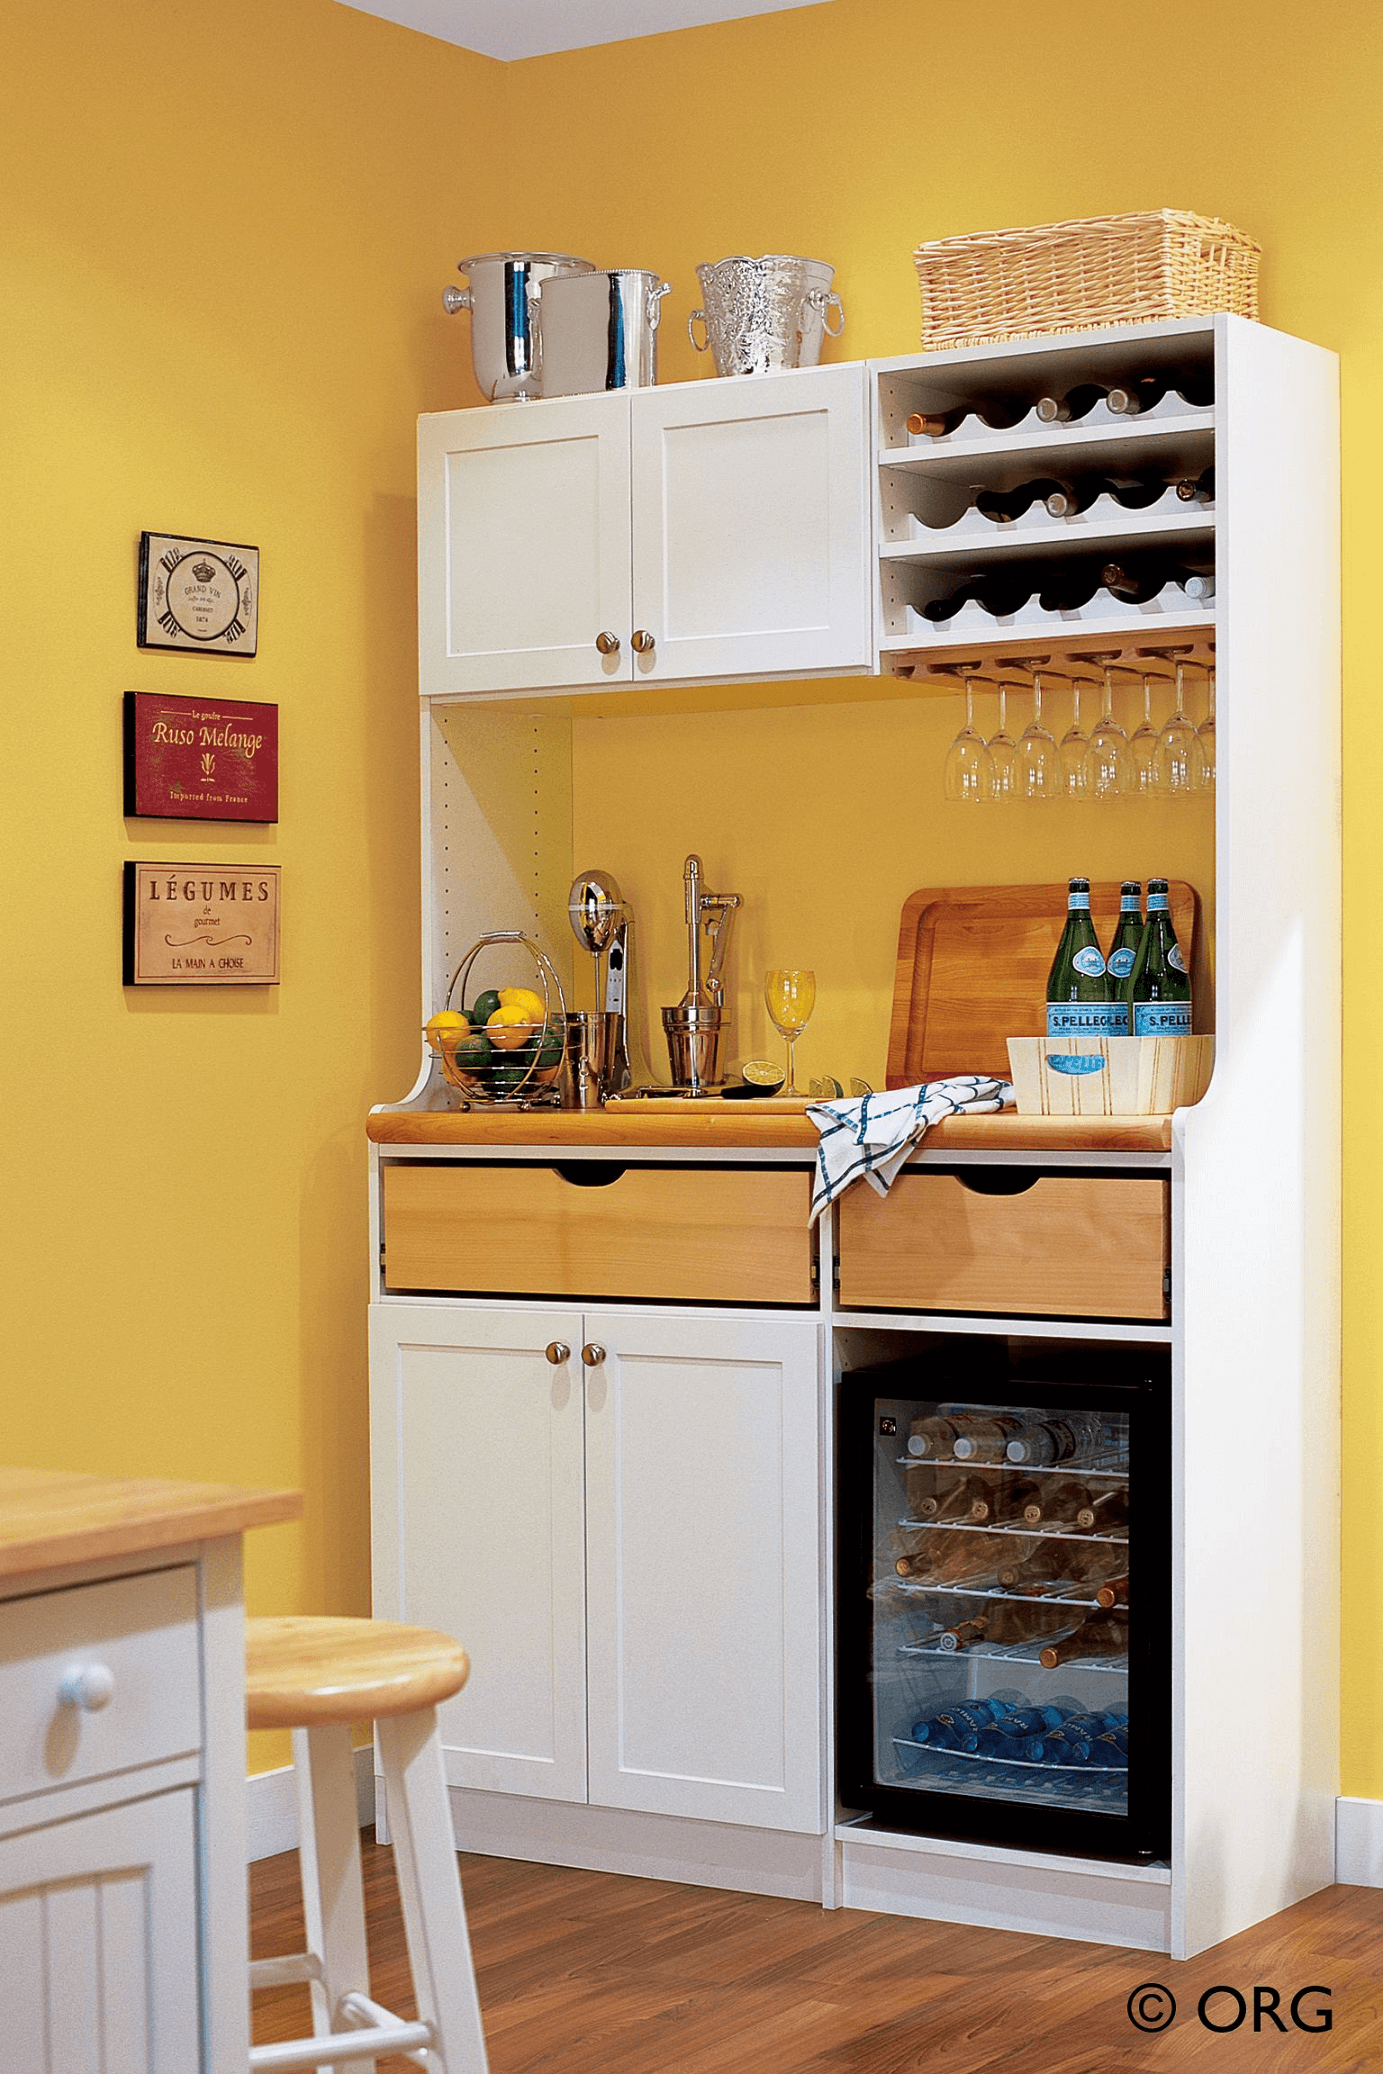 KITCHEN CABINET TOP STORAGE IDEAS